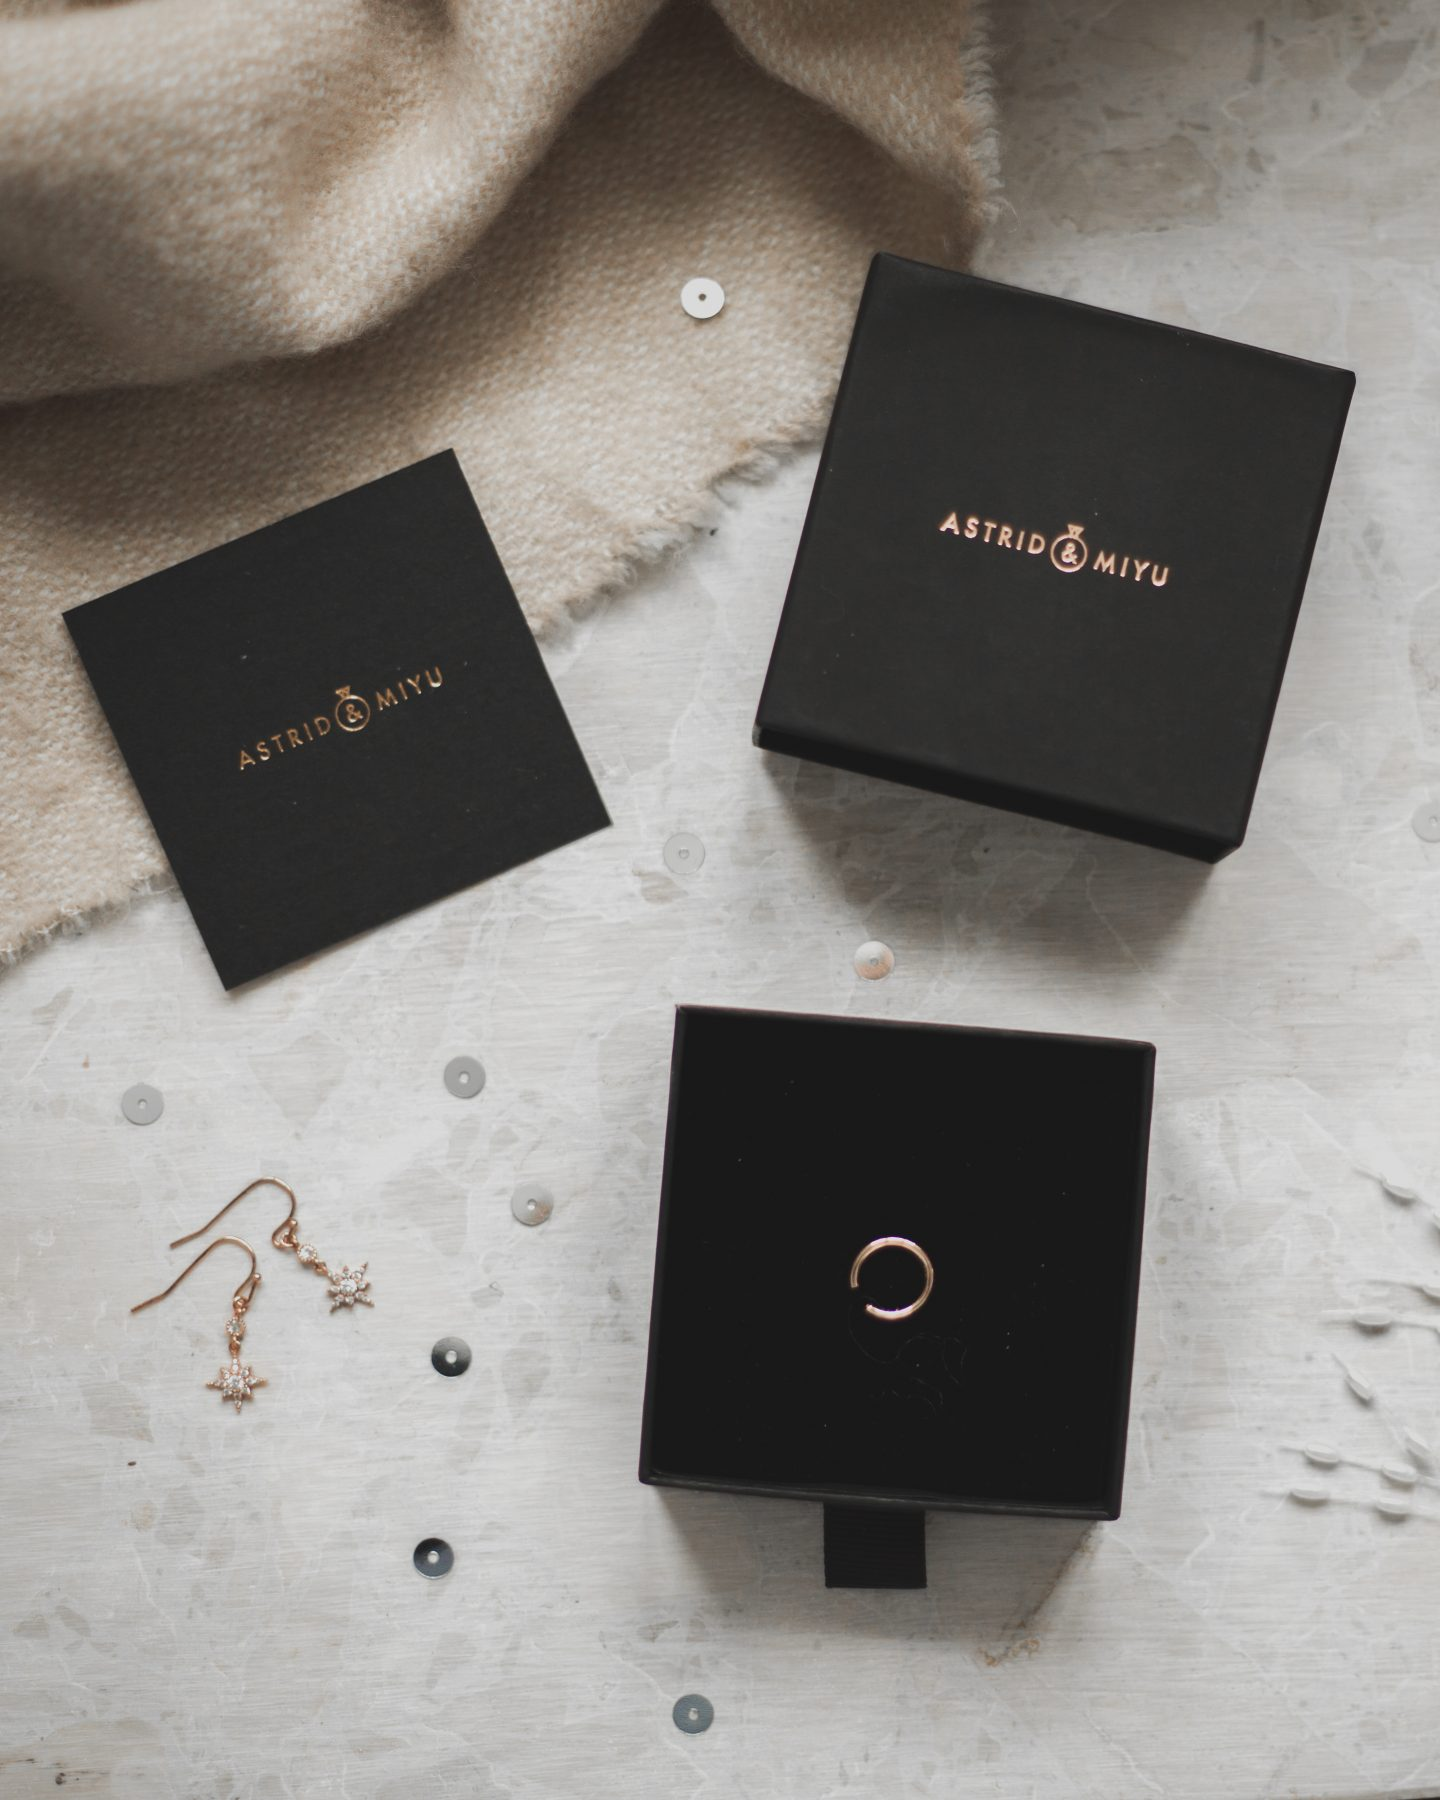 Astrid and Miyu | Minimalist Jewellery Review